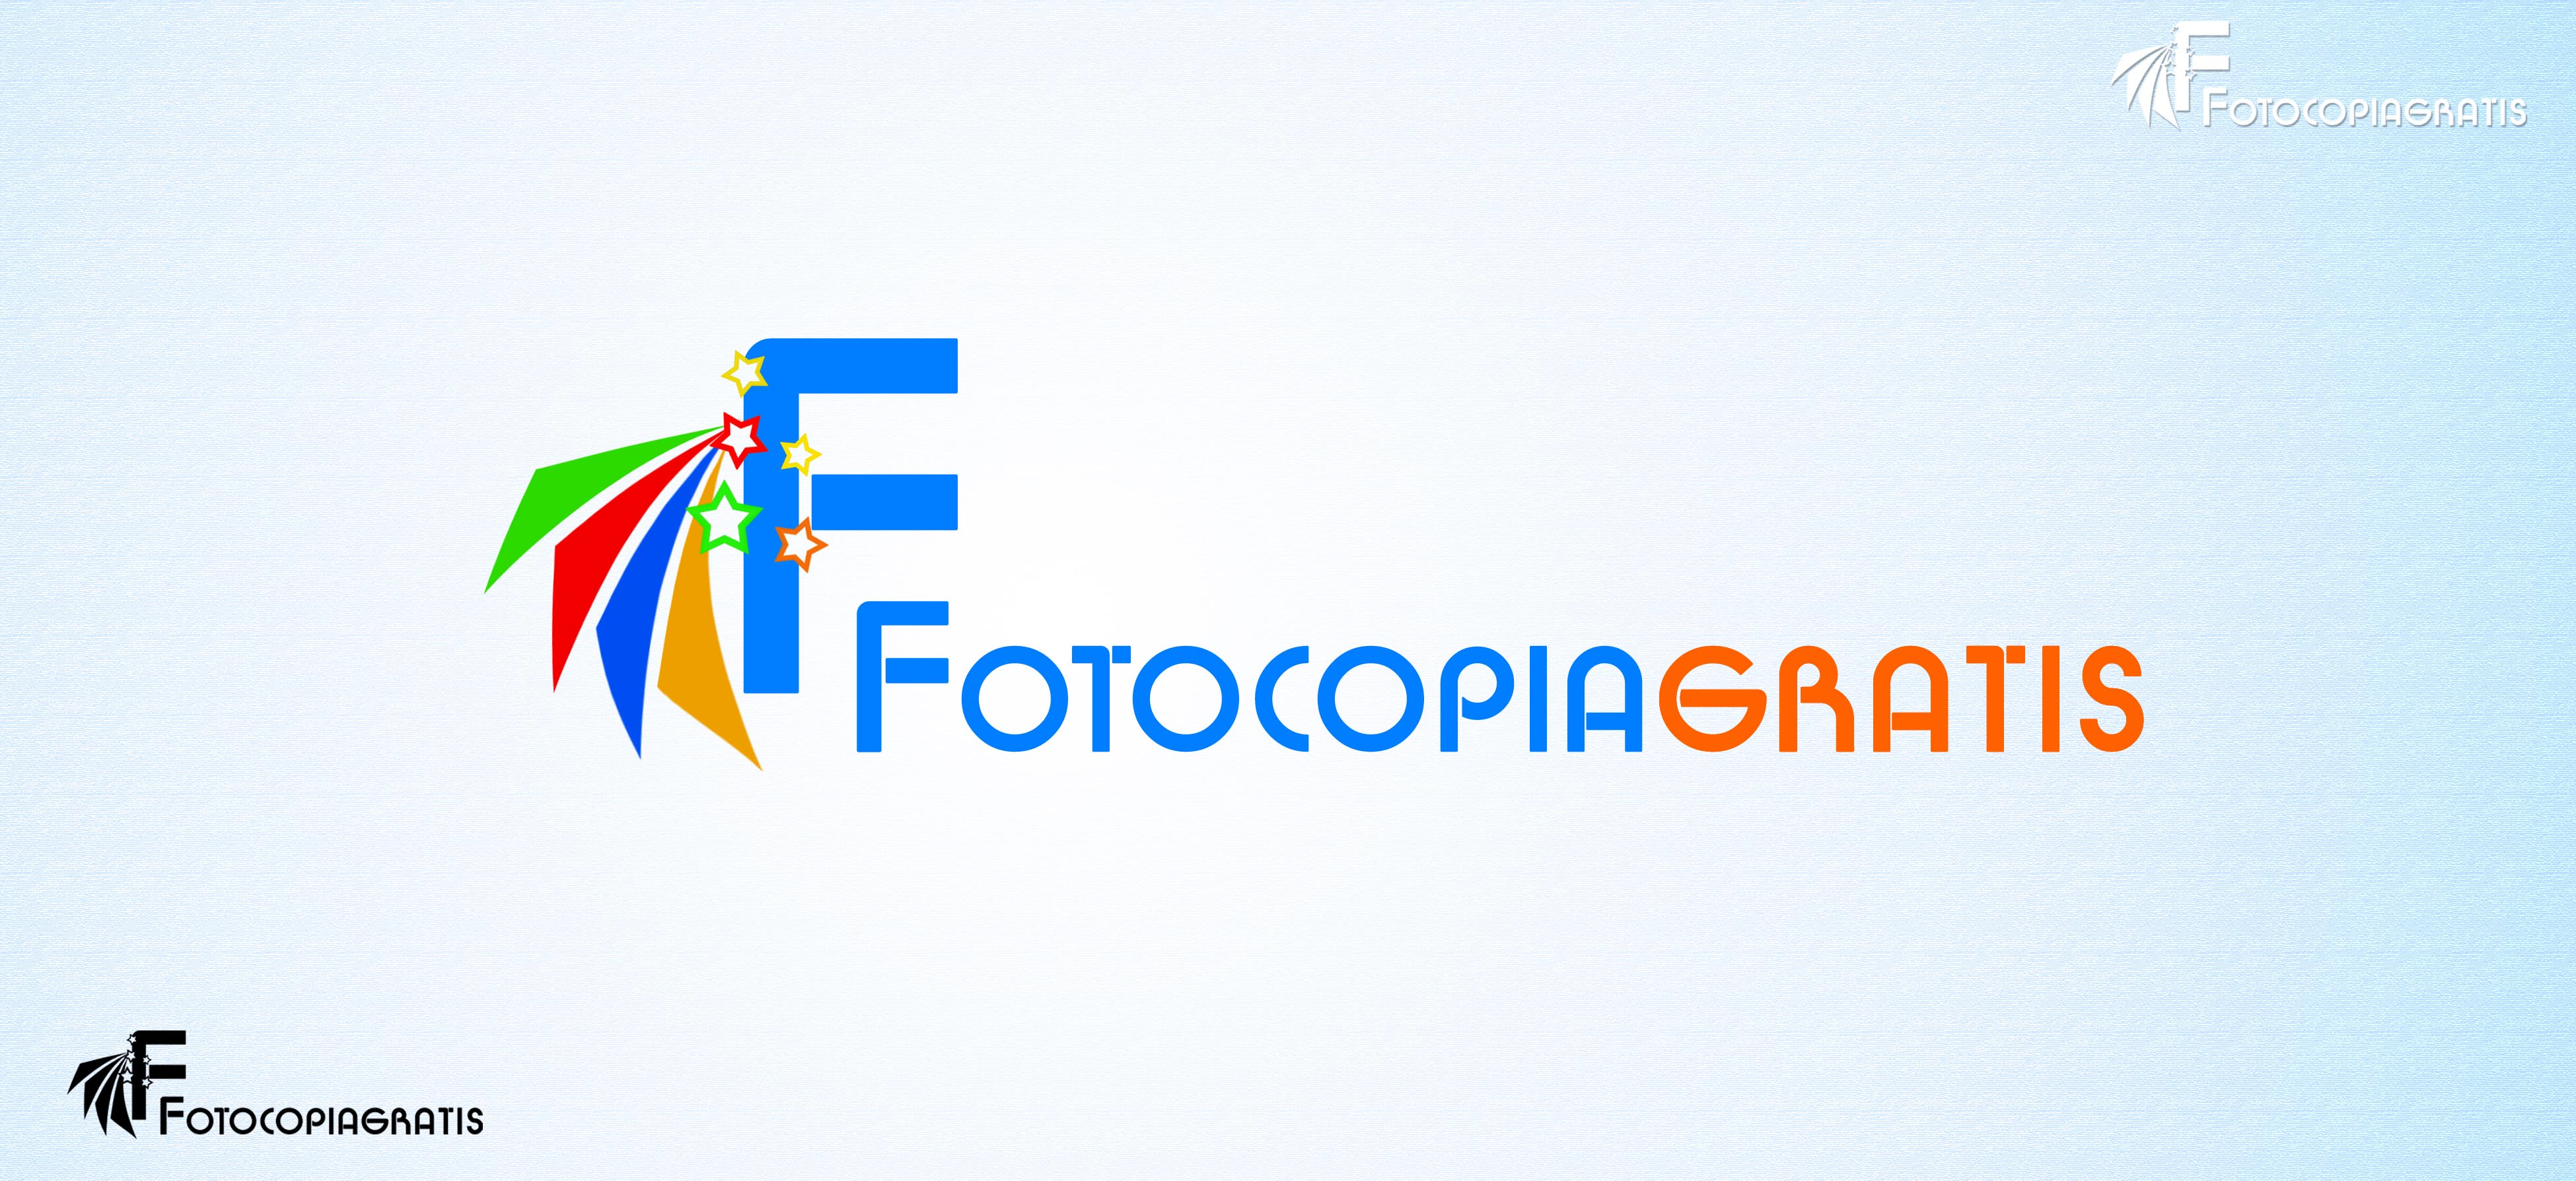 Logo Design by Cesar III Sotto - Entry No. 72 in the Logo Design Contest Inspiring Logo Design for Fotocopiagratis.